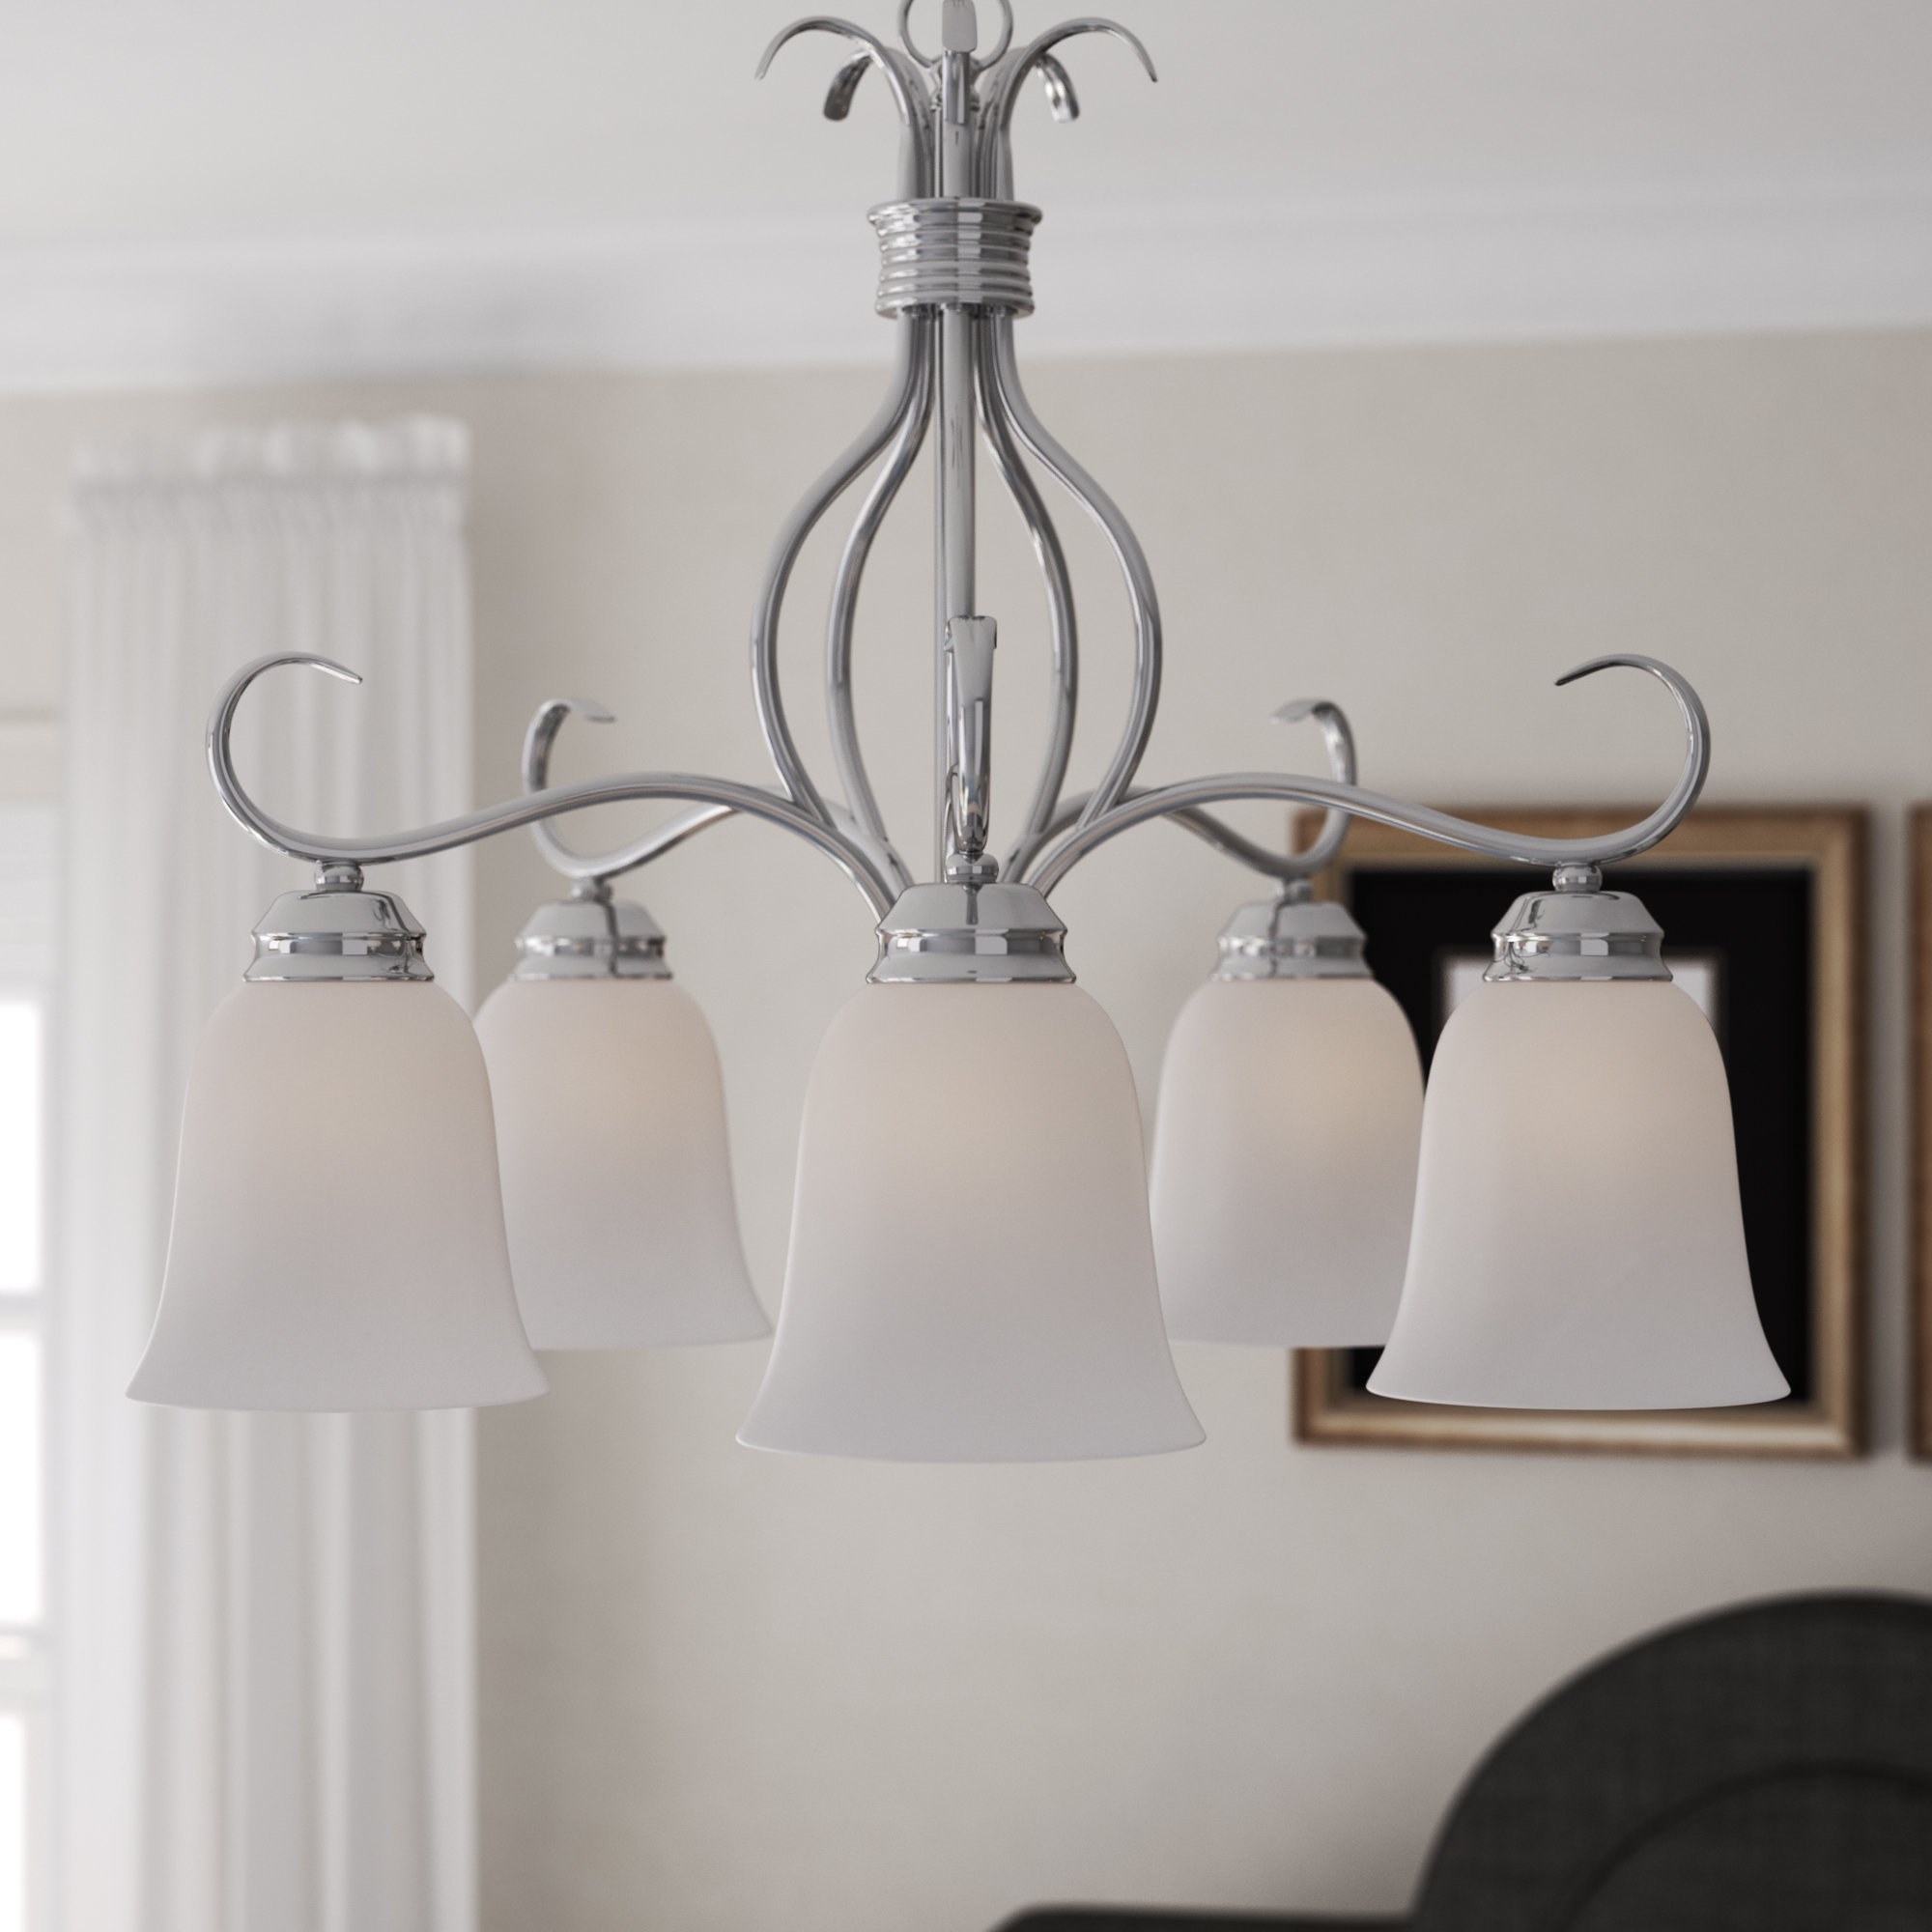 Wehr 5-Light Shaded Chandelier within Crofoot 5-Light Shaded Chandeliers (Image 29 of 30)